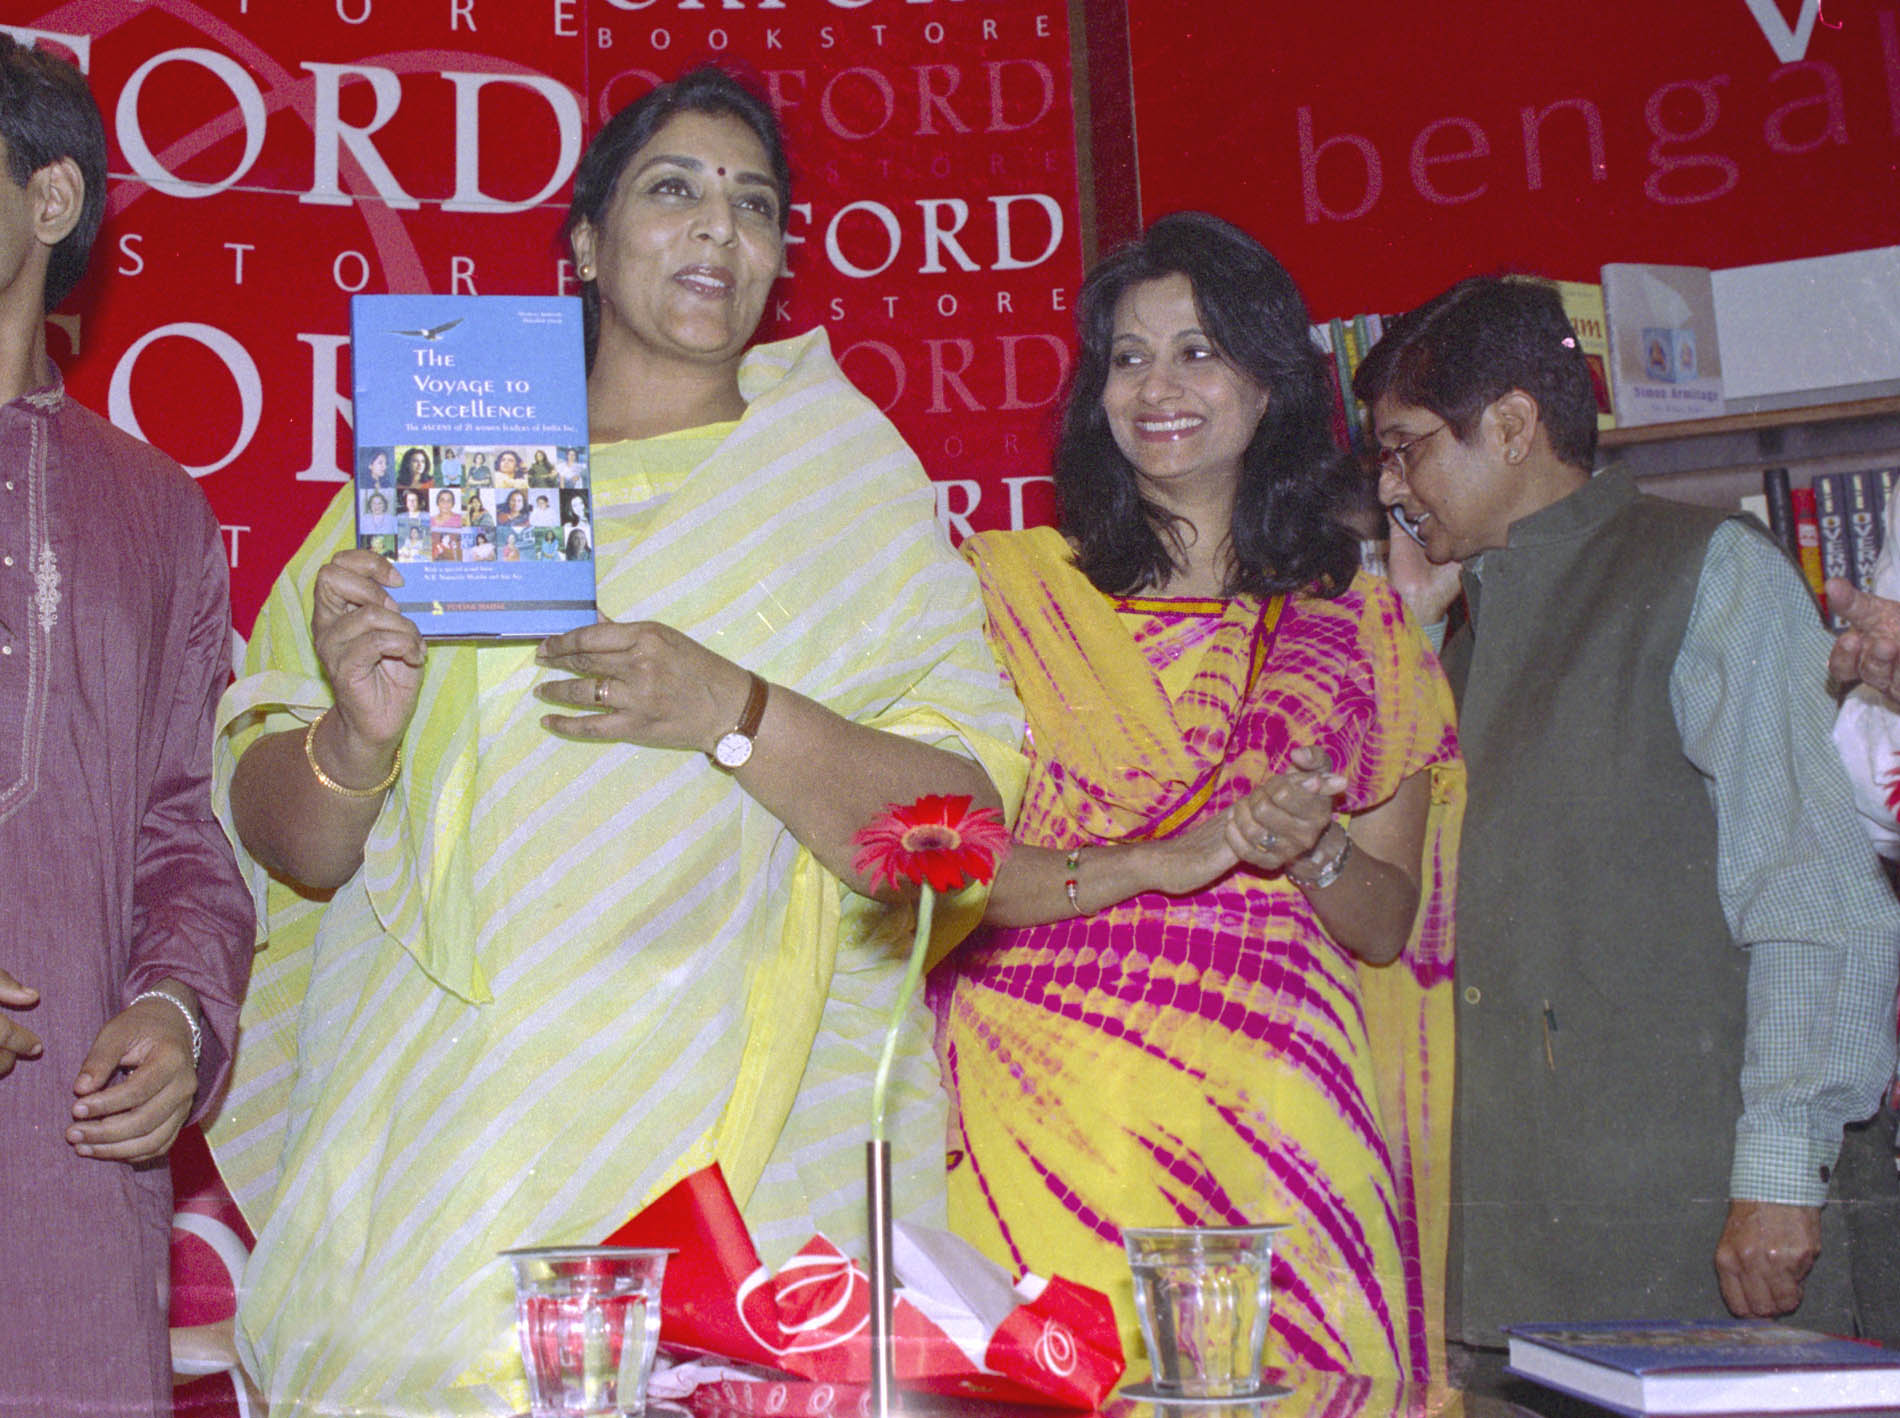 File Renuka Chowdhury Releasing A Book The Voyage To Excellence Stories Of 21 Women Business Leaders Of India Written By Nischinta Amarnath And Debashish Ghosh Iit Student In New Delhi On May 4